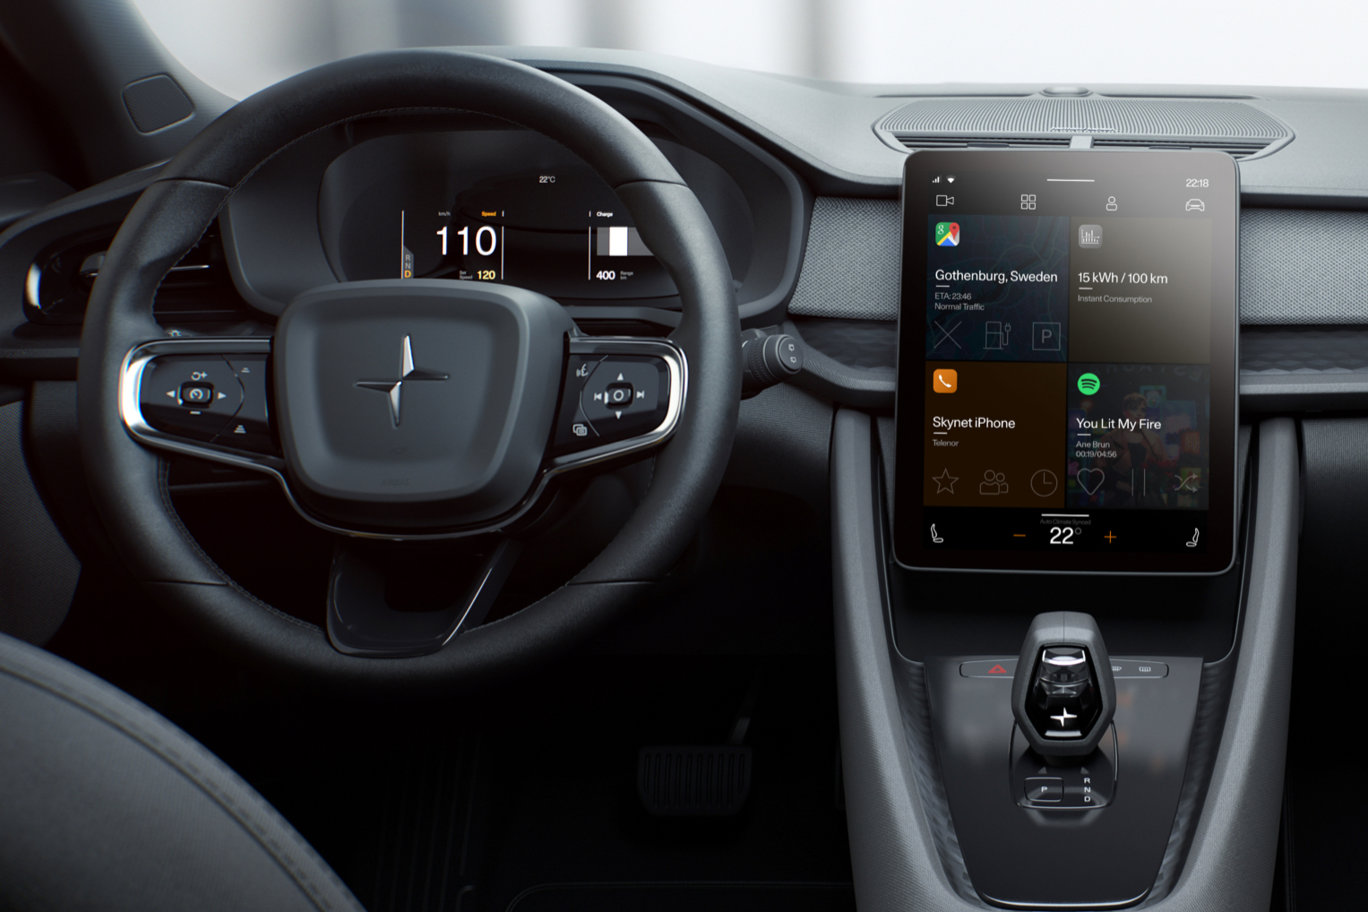 Polestar 2 running Android Automotive